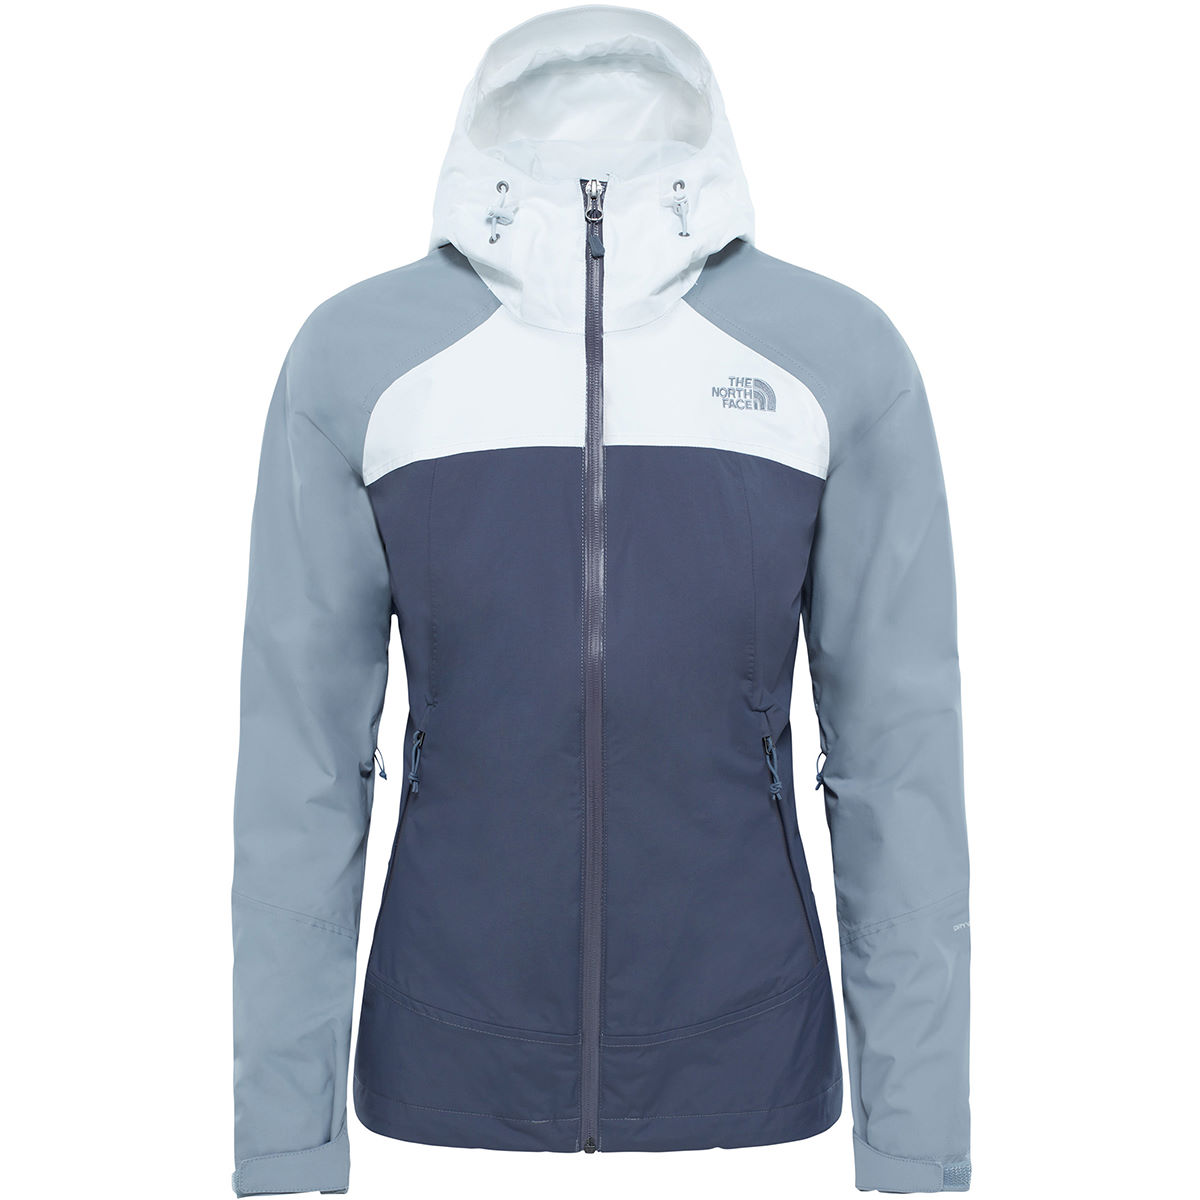 The North Face The North Face Women